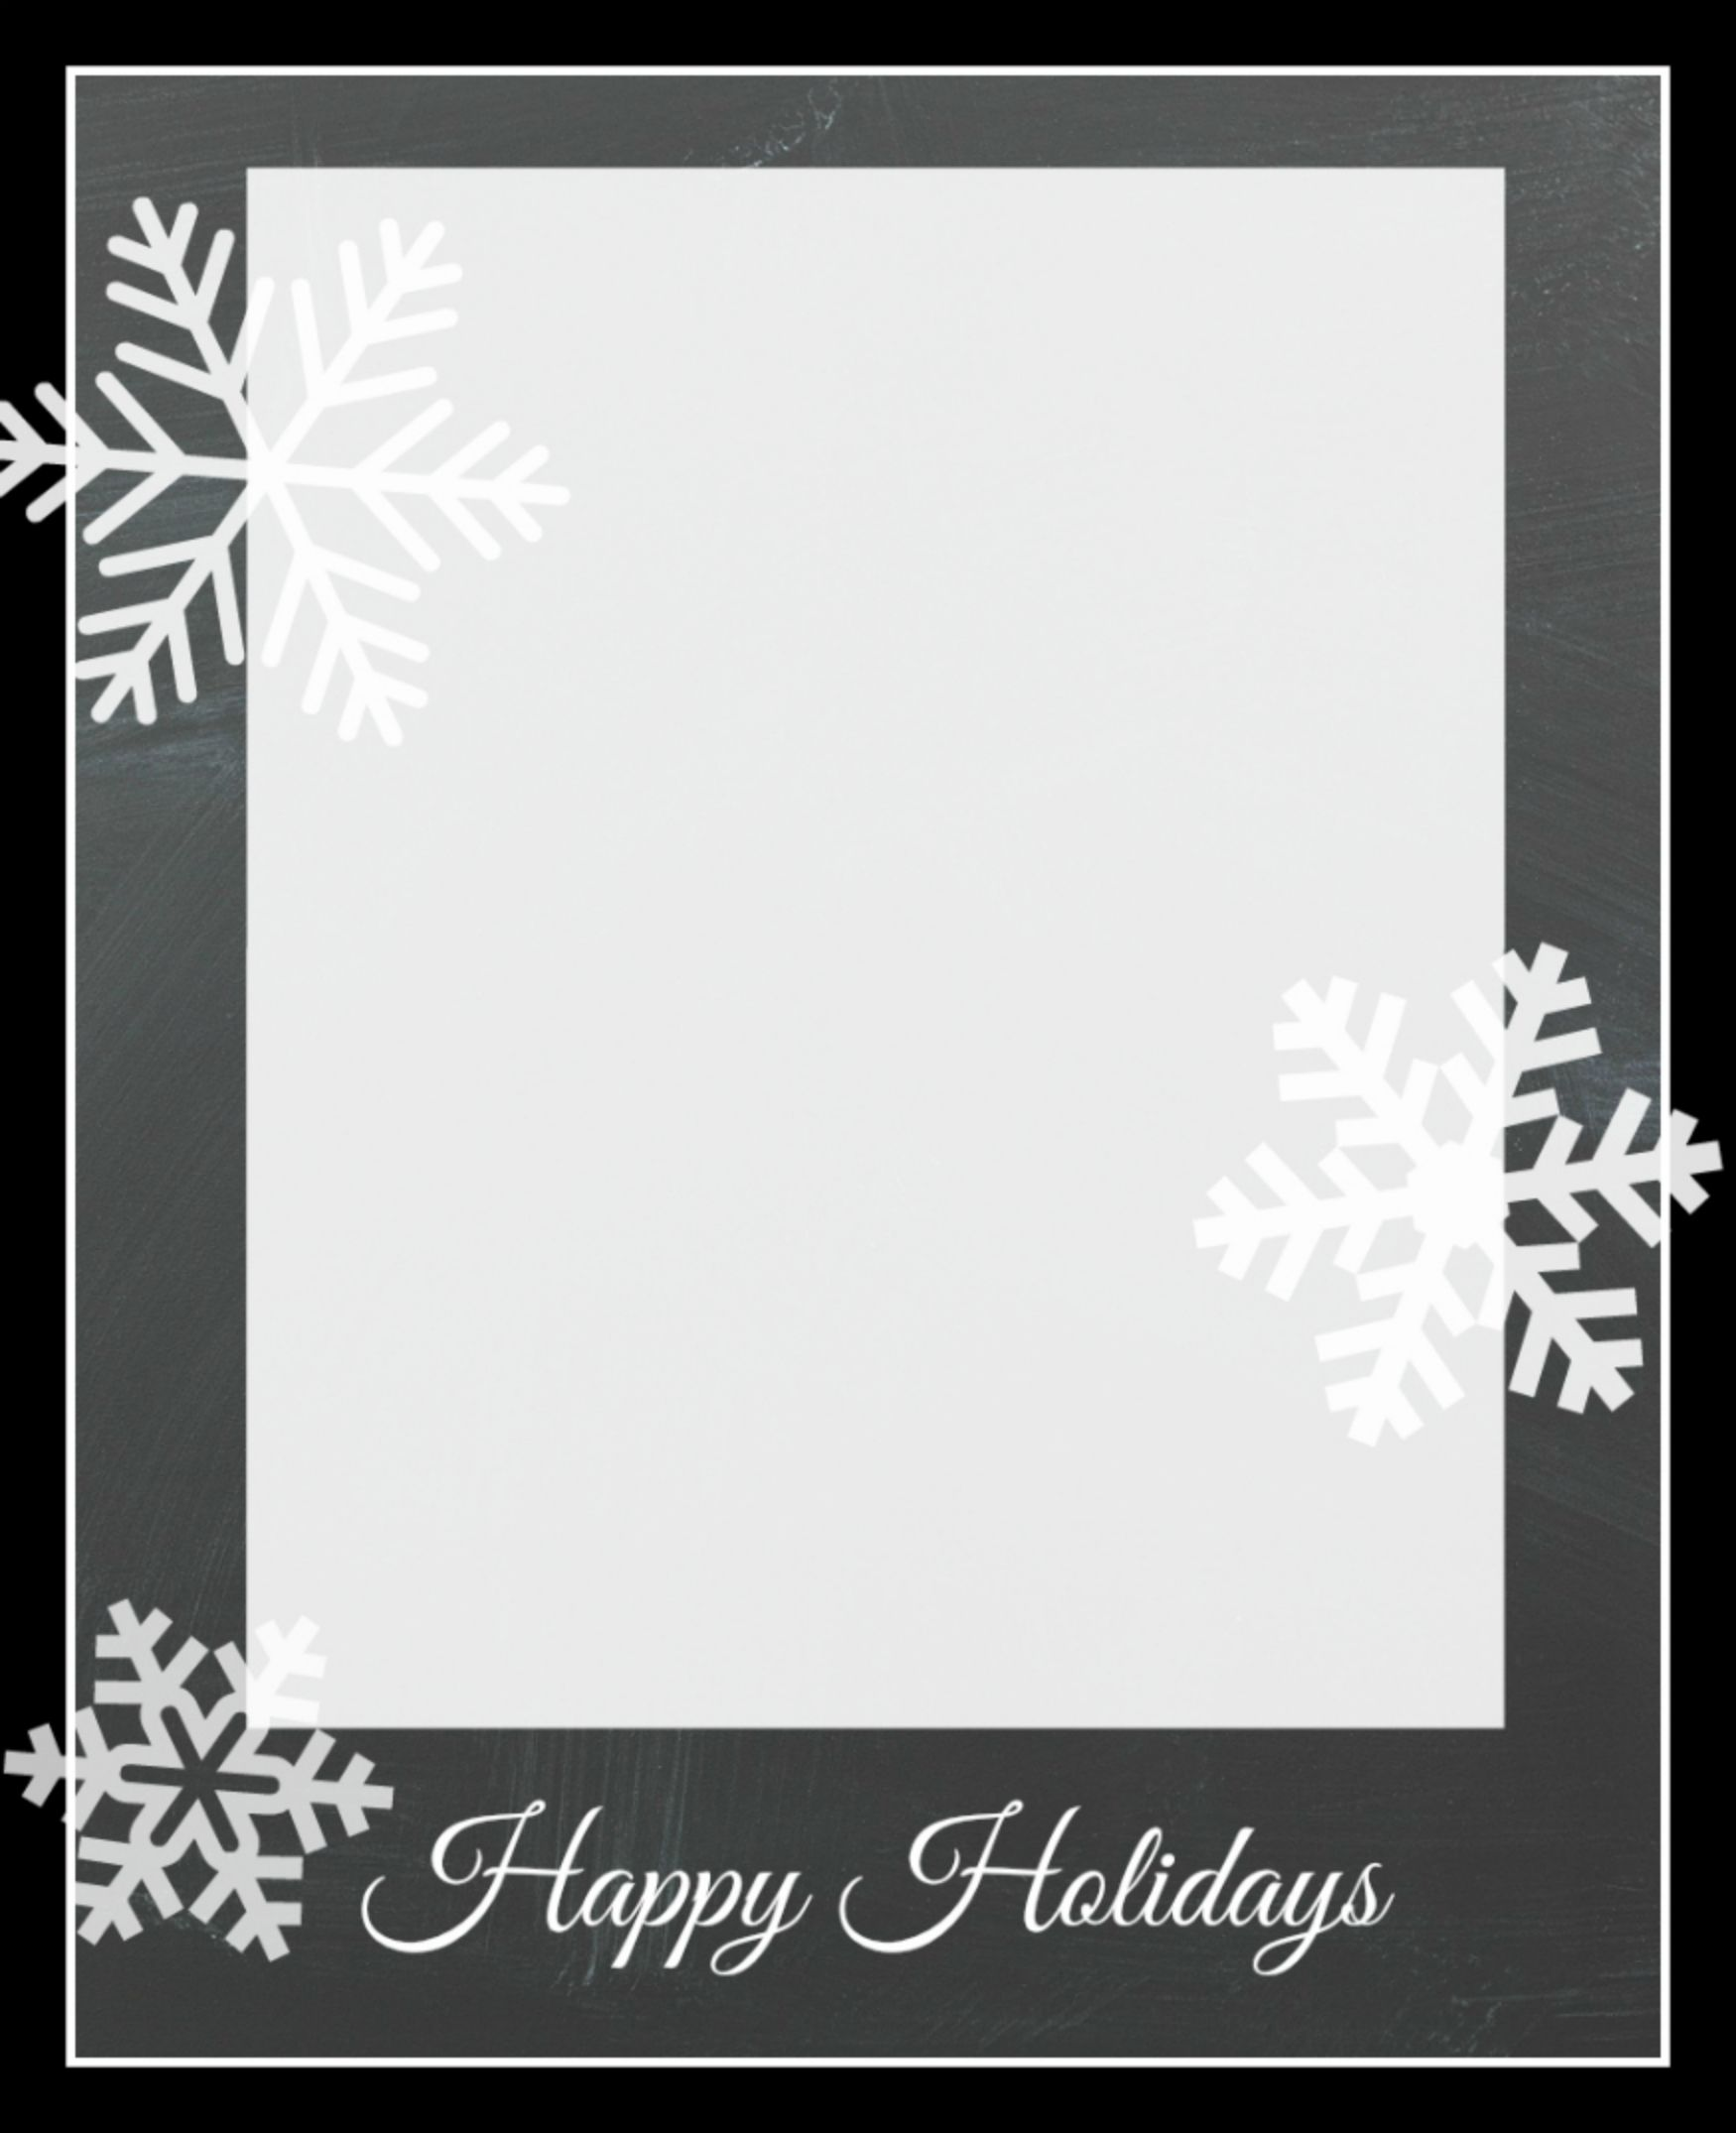 010 Remarkable Free Photo Card Template Idea  Templates Christma Printable Design To PrintFull